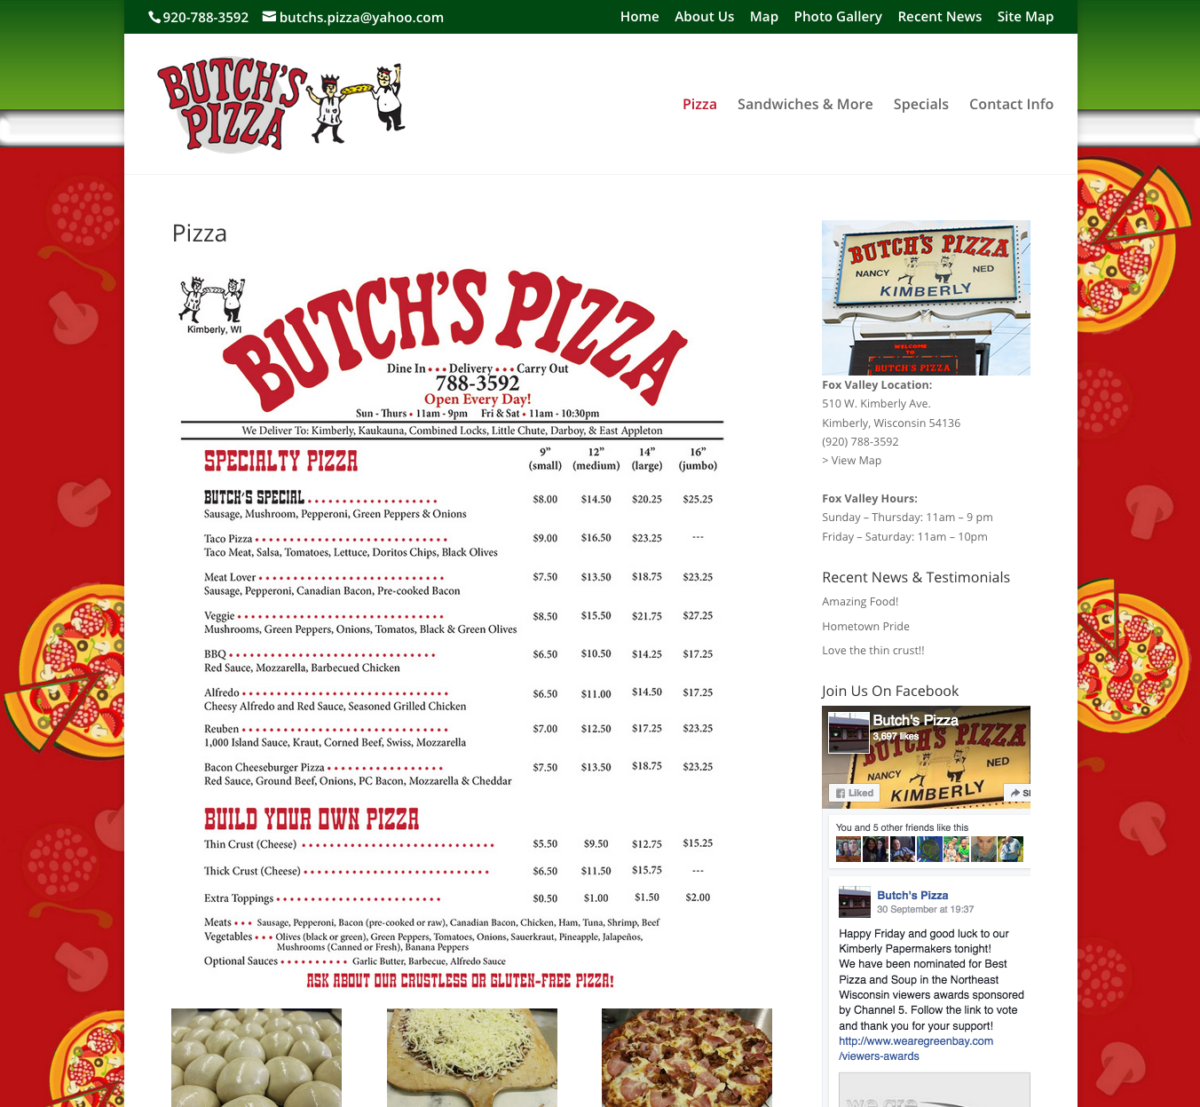 food delivery service,pizza delivery places near me, butchspizzawi.com, food delivery service,butch's pizza, butch's pizza kimberly, butchs pizza, pizza delivery near me, pizza delivery driver jobs, pizza delivery deals, pizza delivery by me,eagle river wi, fox valley wi,eagle river food delivery, eagle river pizza delivery,best pizza in eagle river, eagle river pizza, eagle river pizza delivery